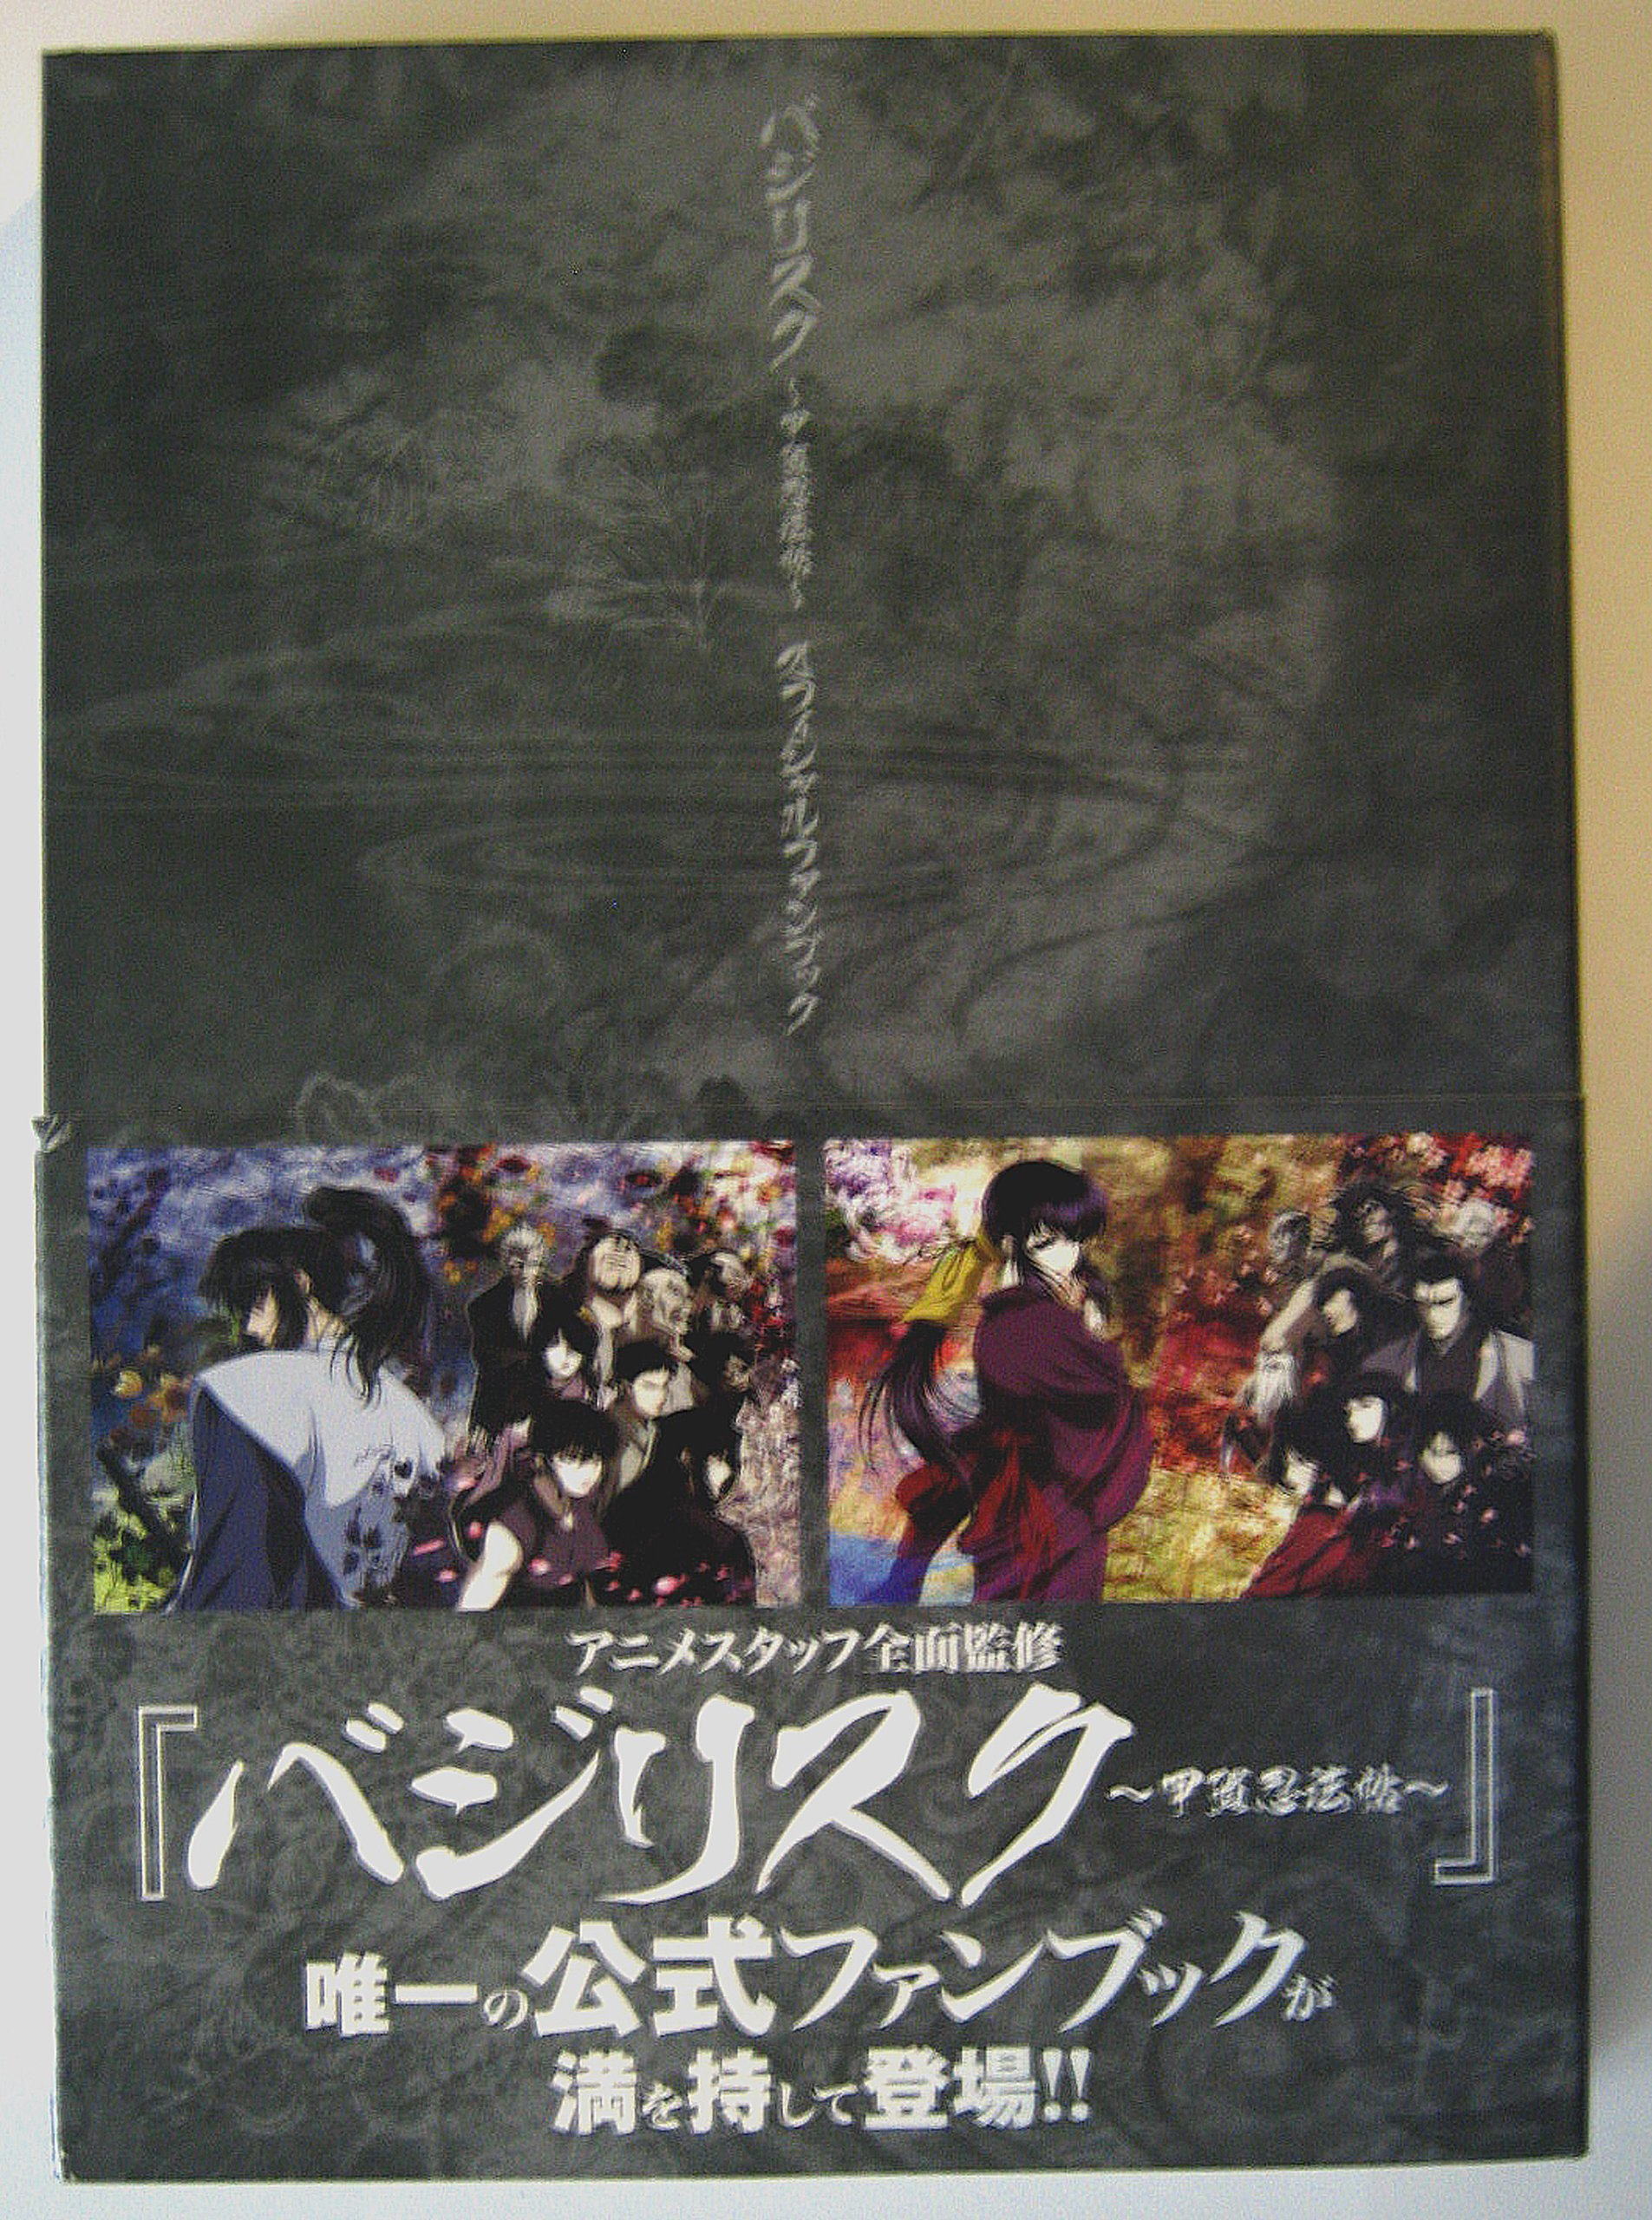 Basilisk: The Kouga Ninja Scrolls Official Anime Fanbook ...